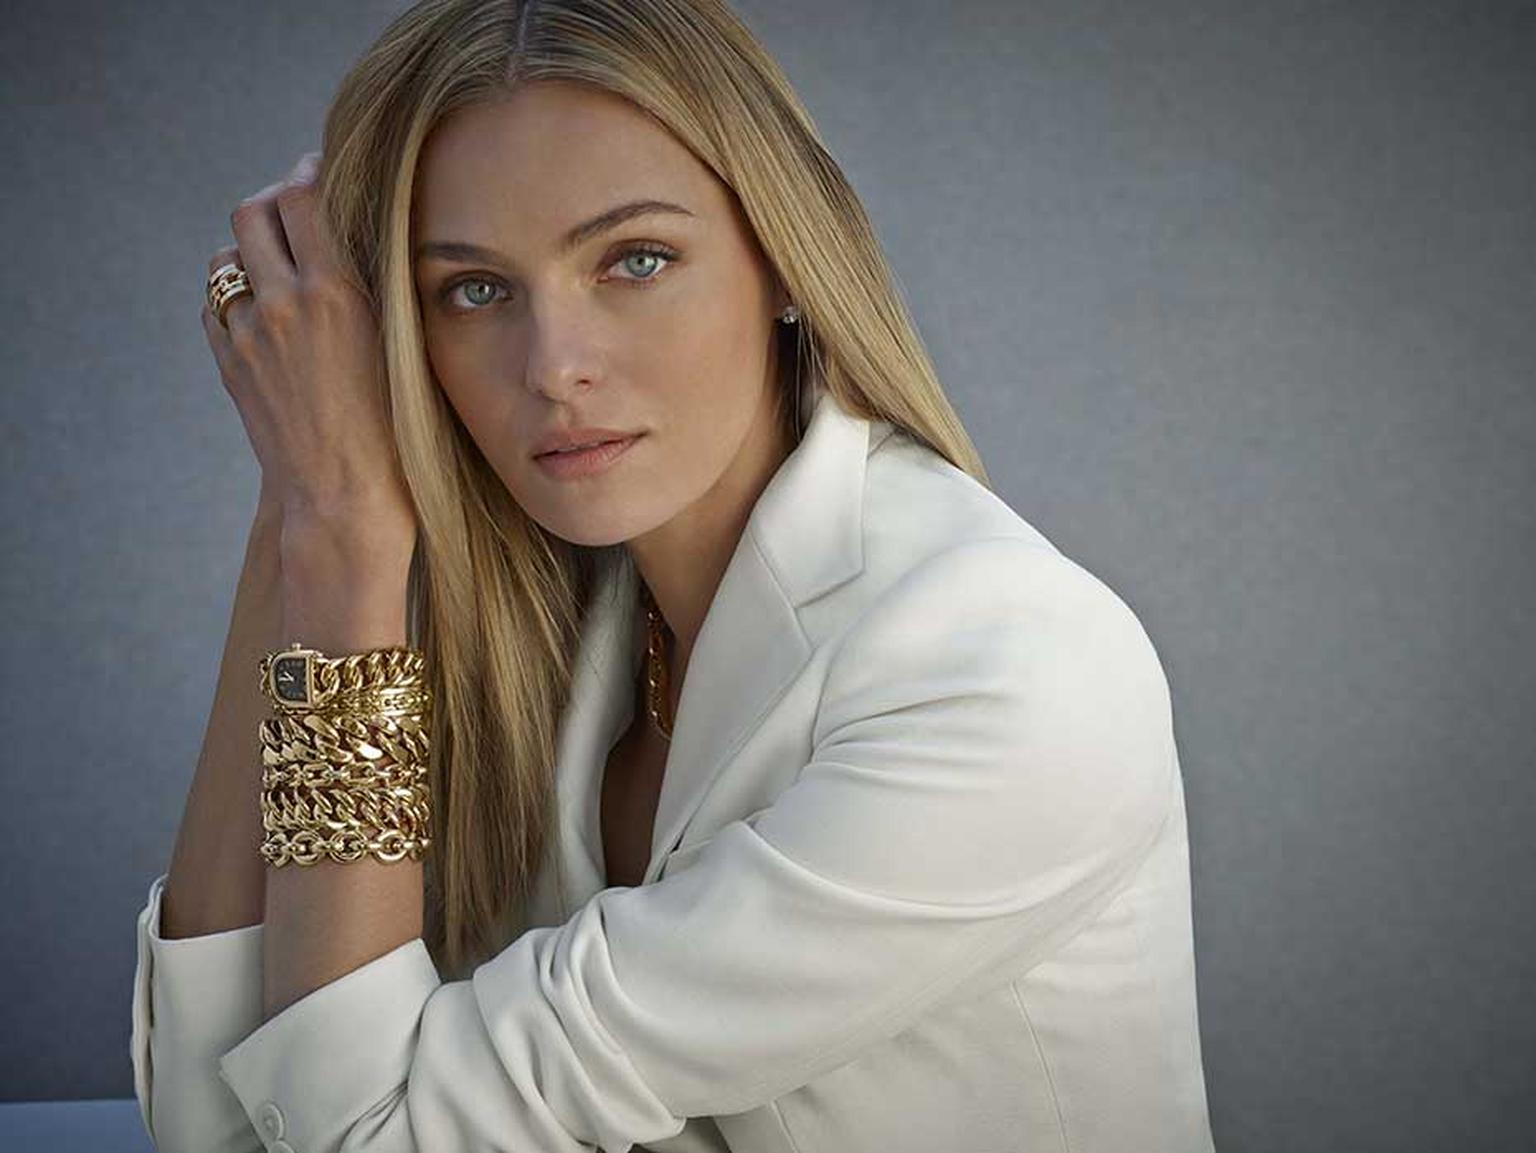 Model wearing Ralph Lauren Chunky Chain bracelets and rings